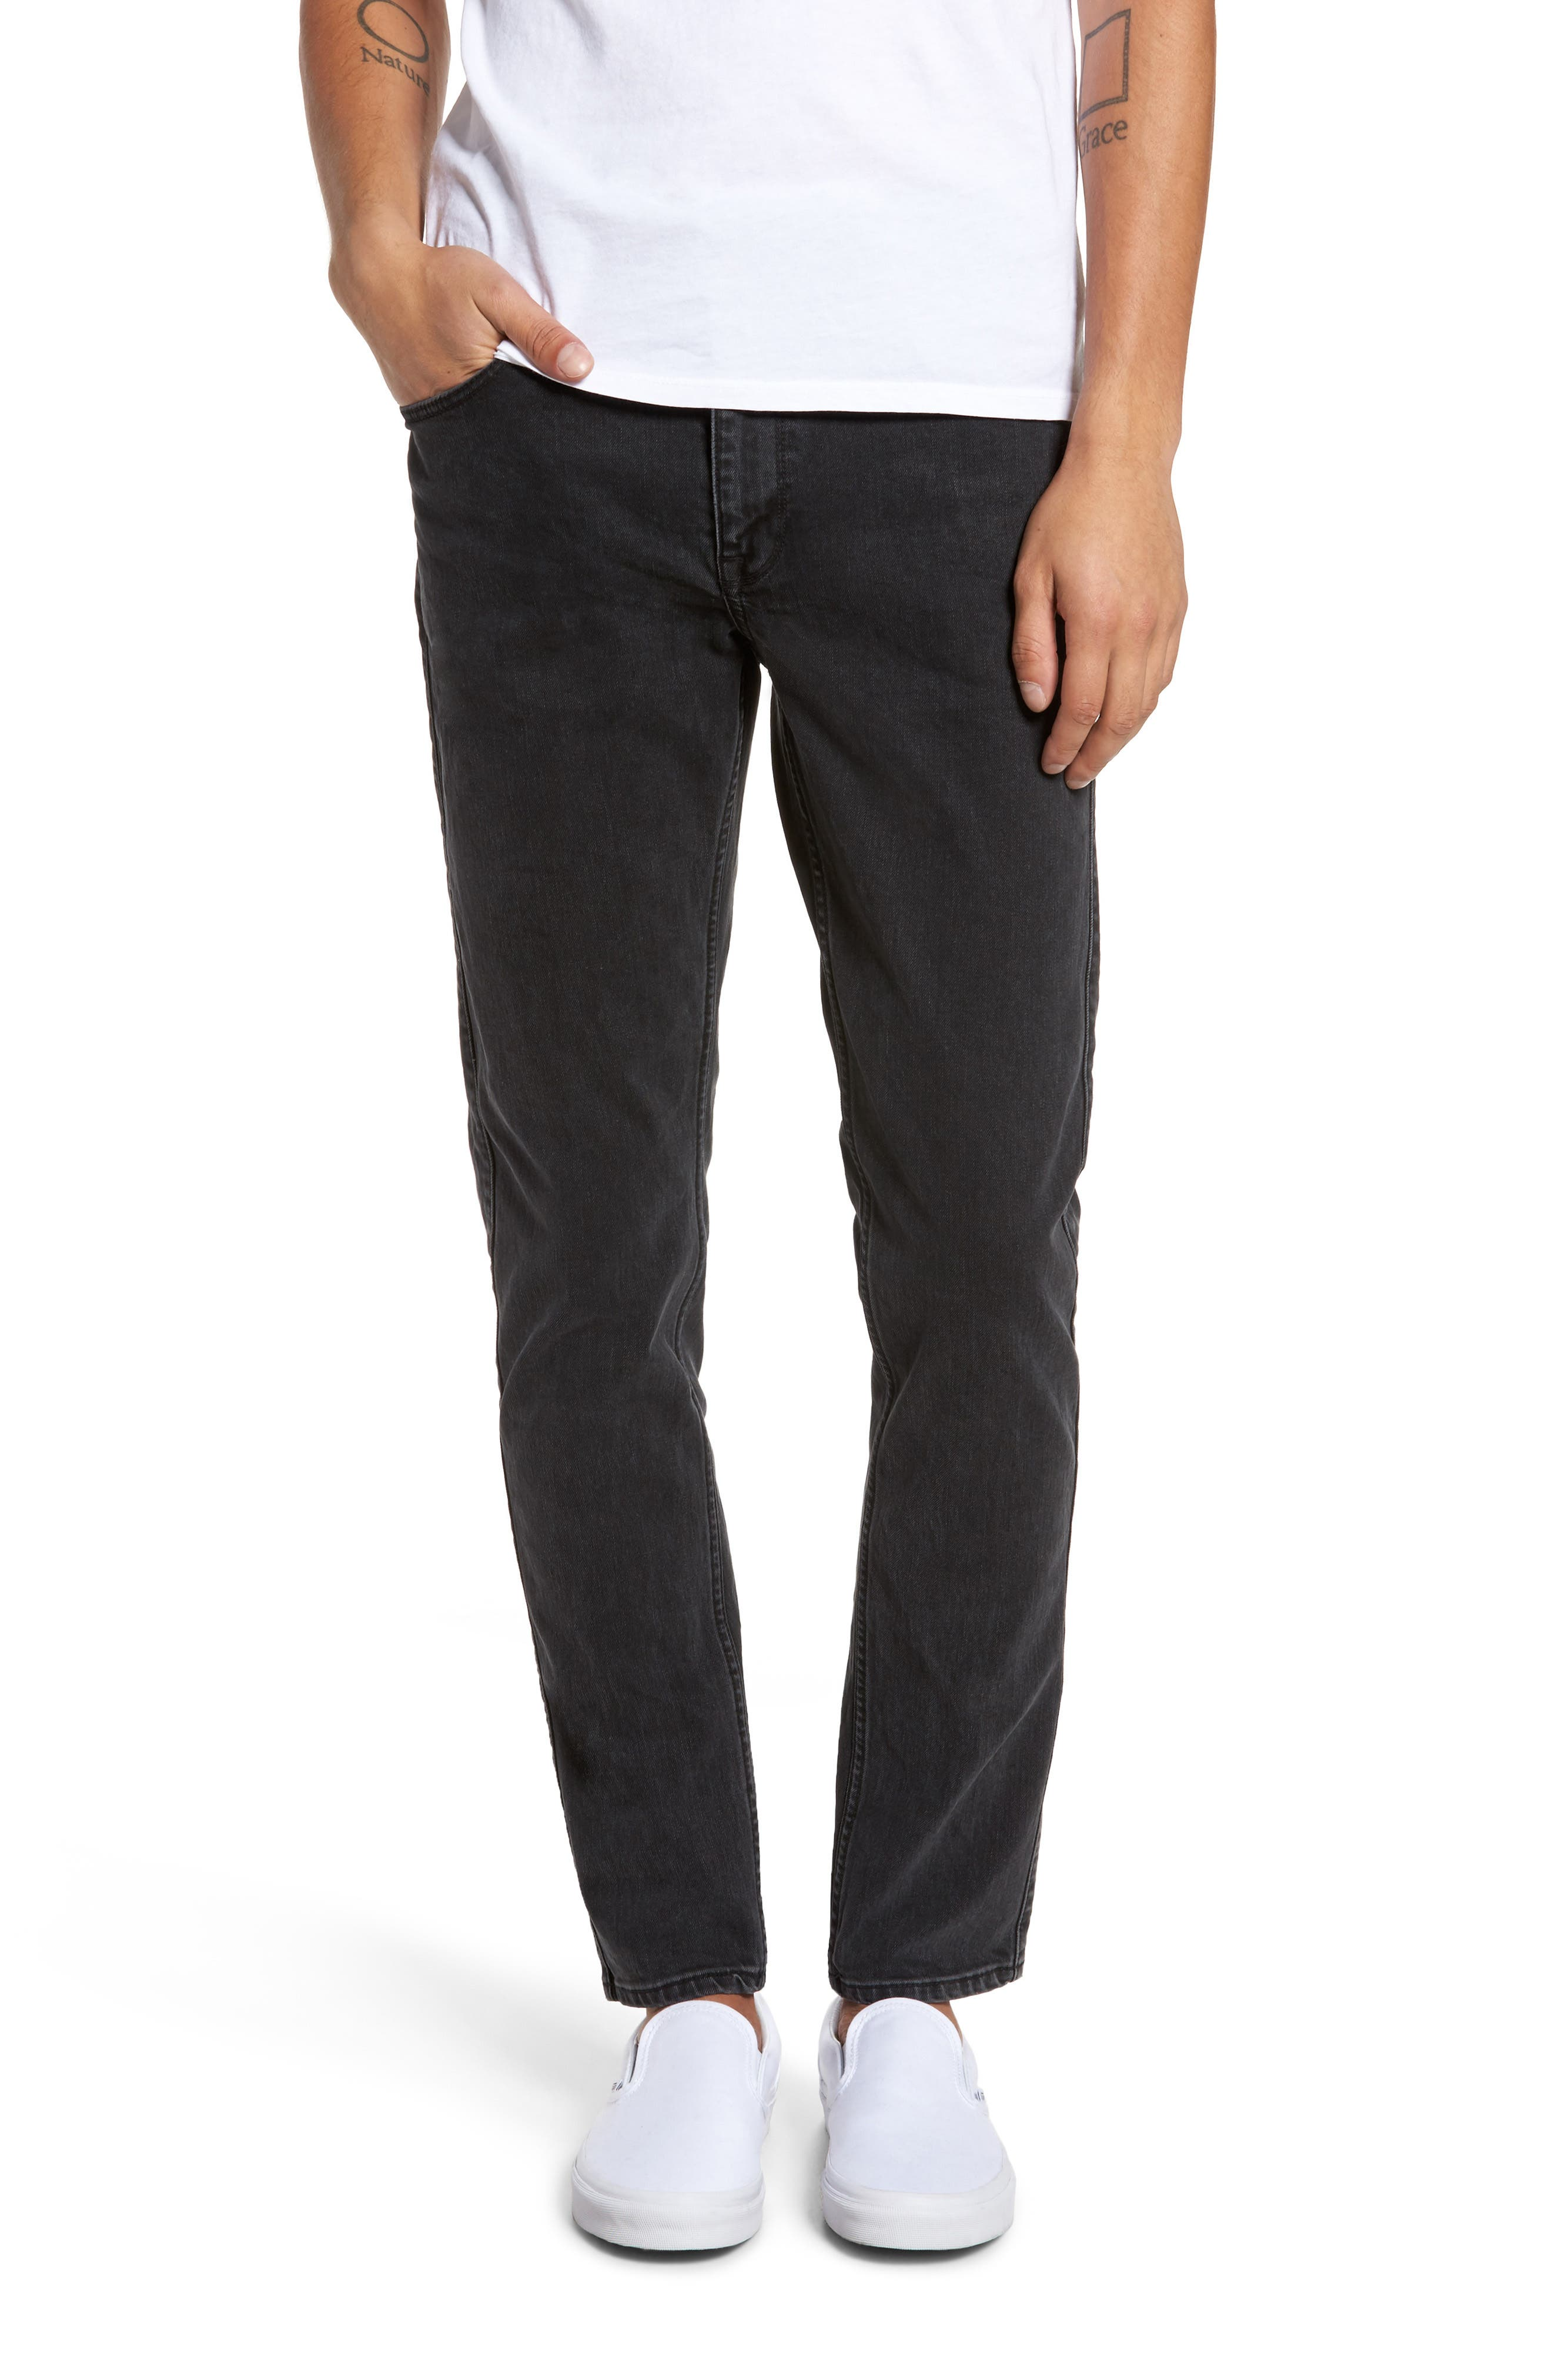 Clark Slim Straight Leg Jeans,                             Main thumbnail 1, color,                             001